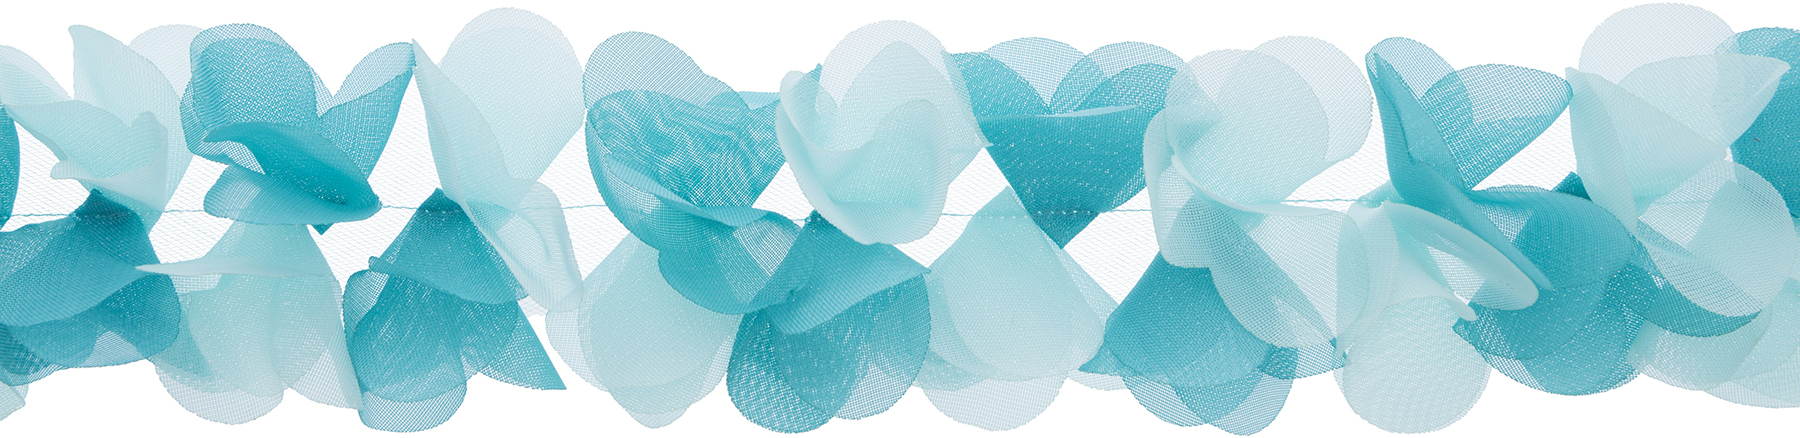 Petals Ombre Turquoise